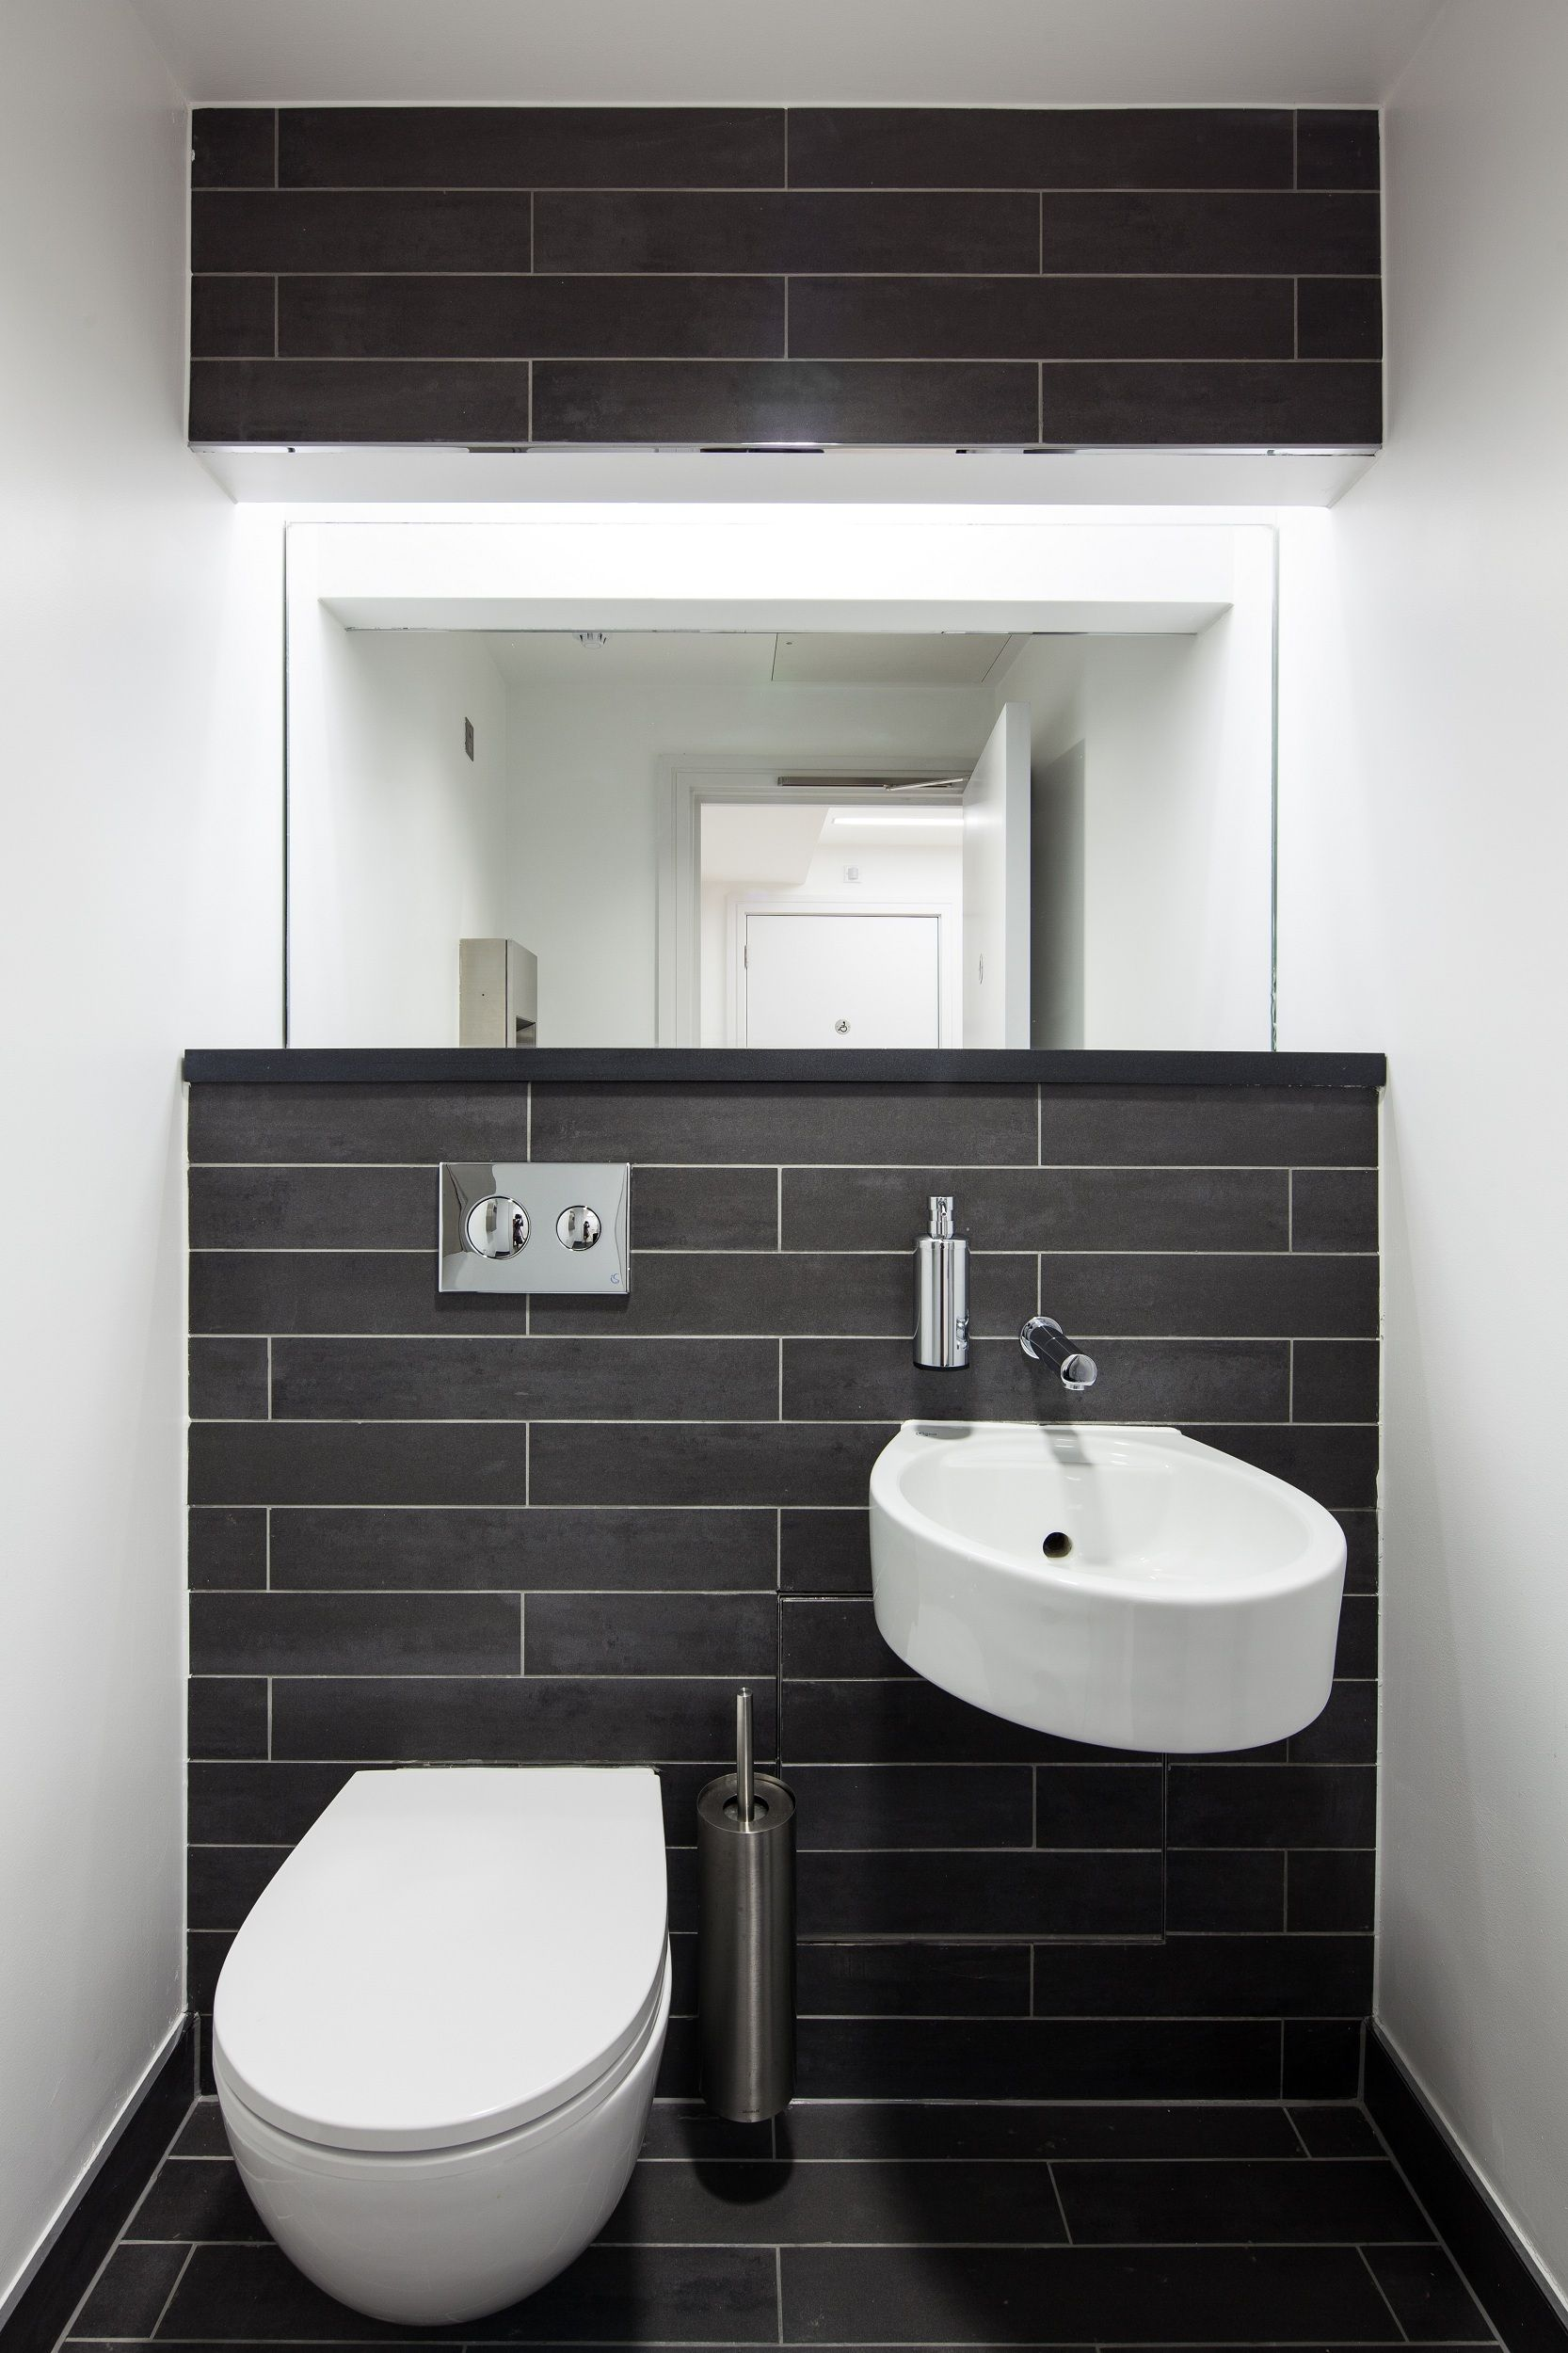 Betonverf Action Badkamer Office Restroom Slingsby Place Ecs Council Street Mood Book In